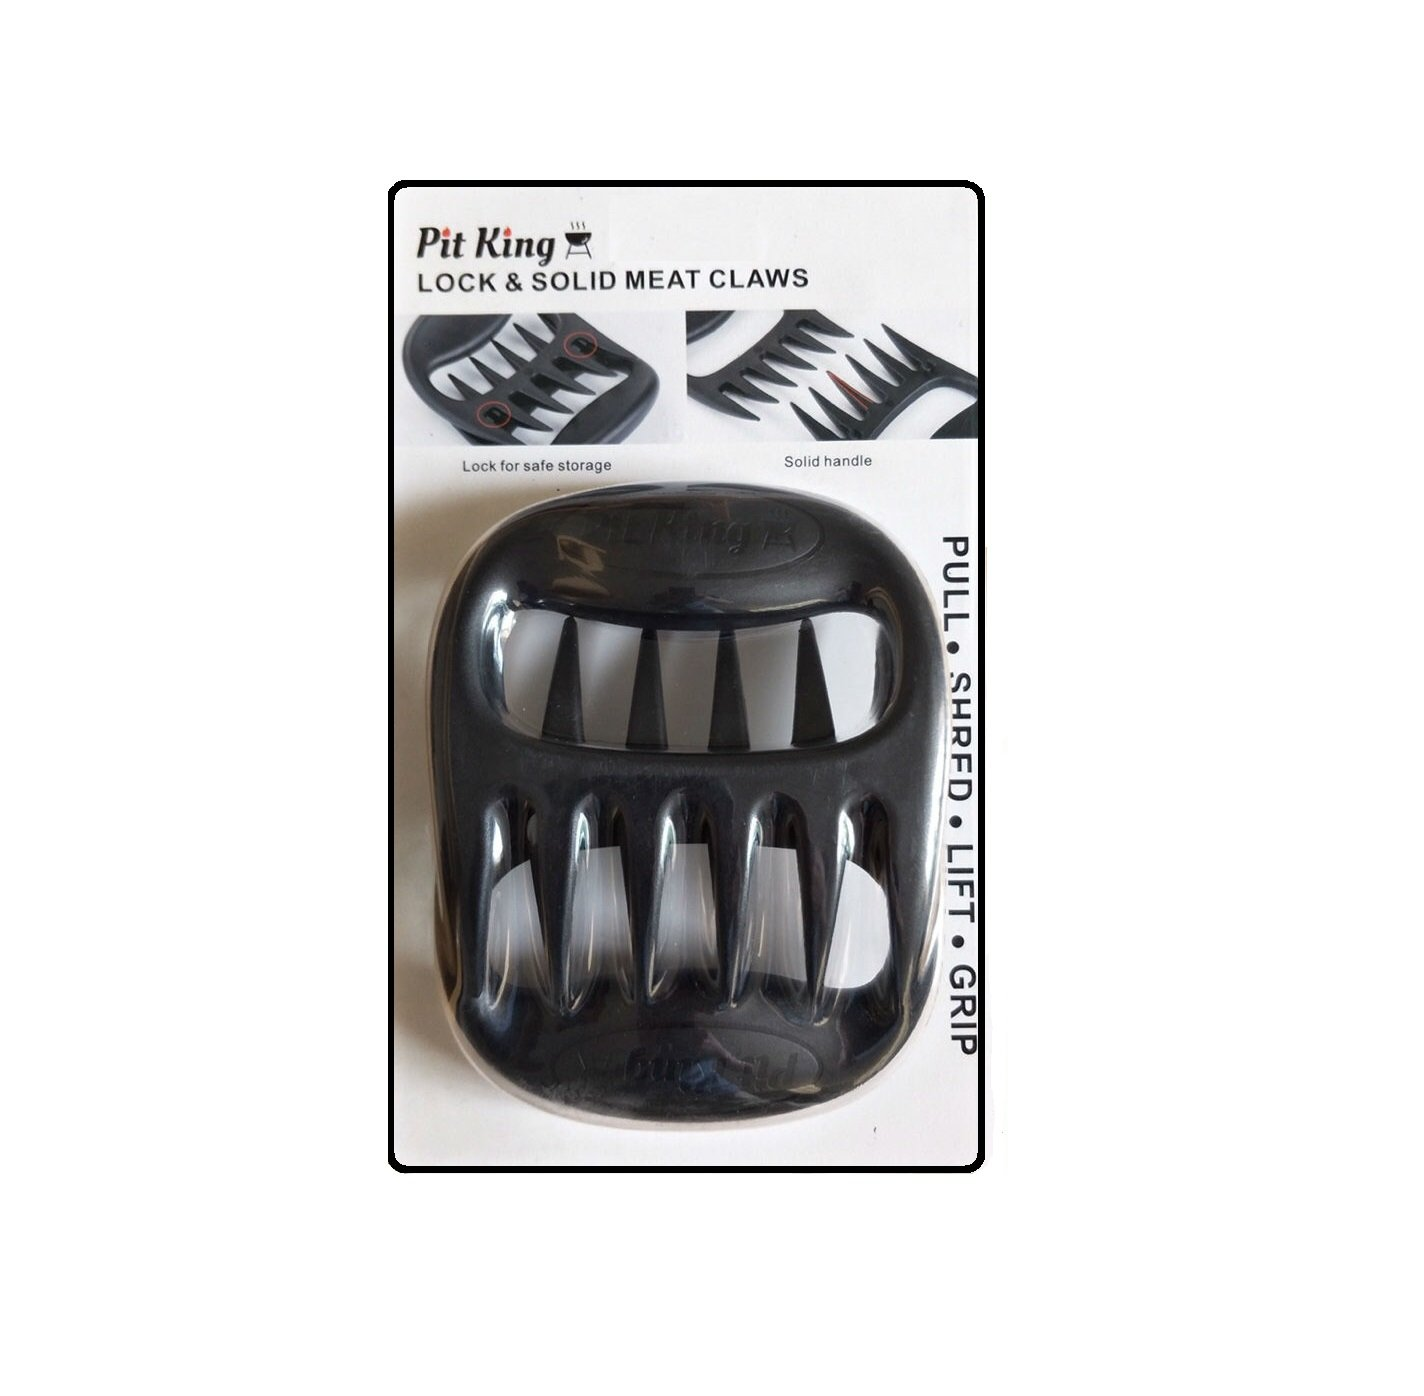 Pit King Pulled Pork Shredder Claws | BPA Free | Solid Construction | Easily Pull Pork | Lift Brisket | Dish Washer Safe | No Crevices for Meat to Get Stuck in | Easy Storage | Heat Resistant Nylon by Pit King (Image #1)